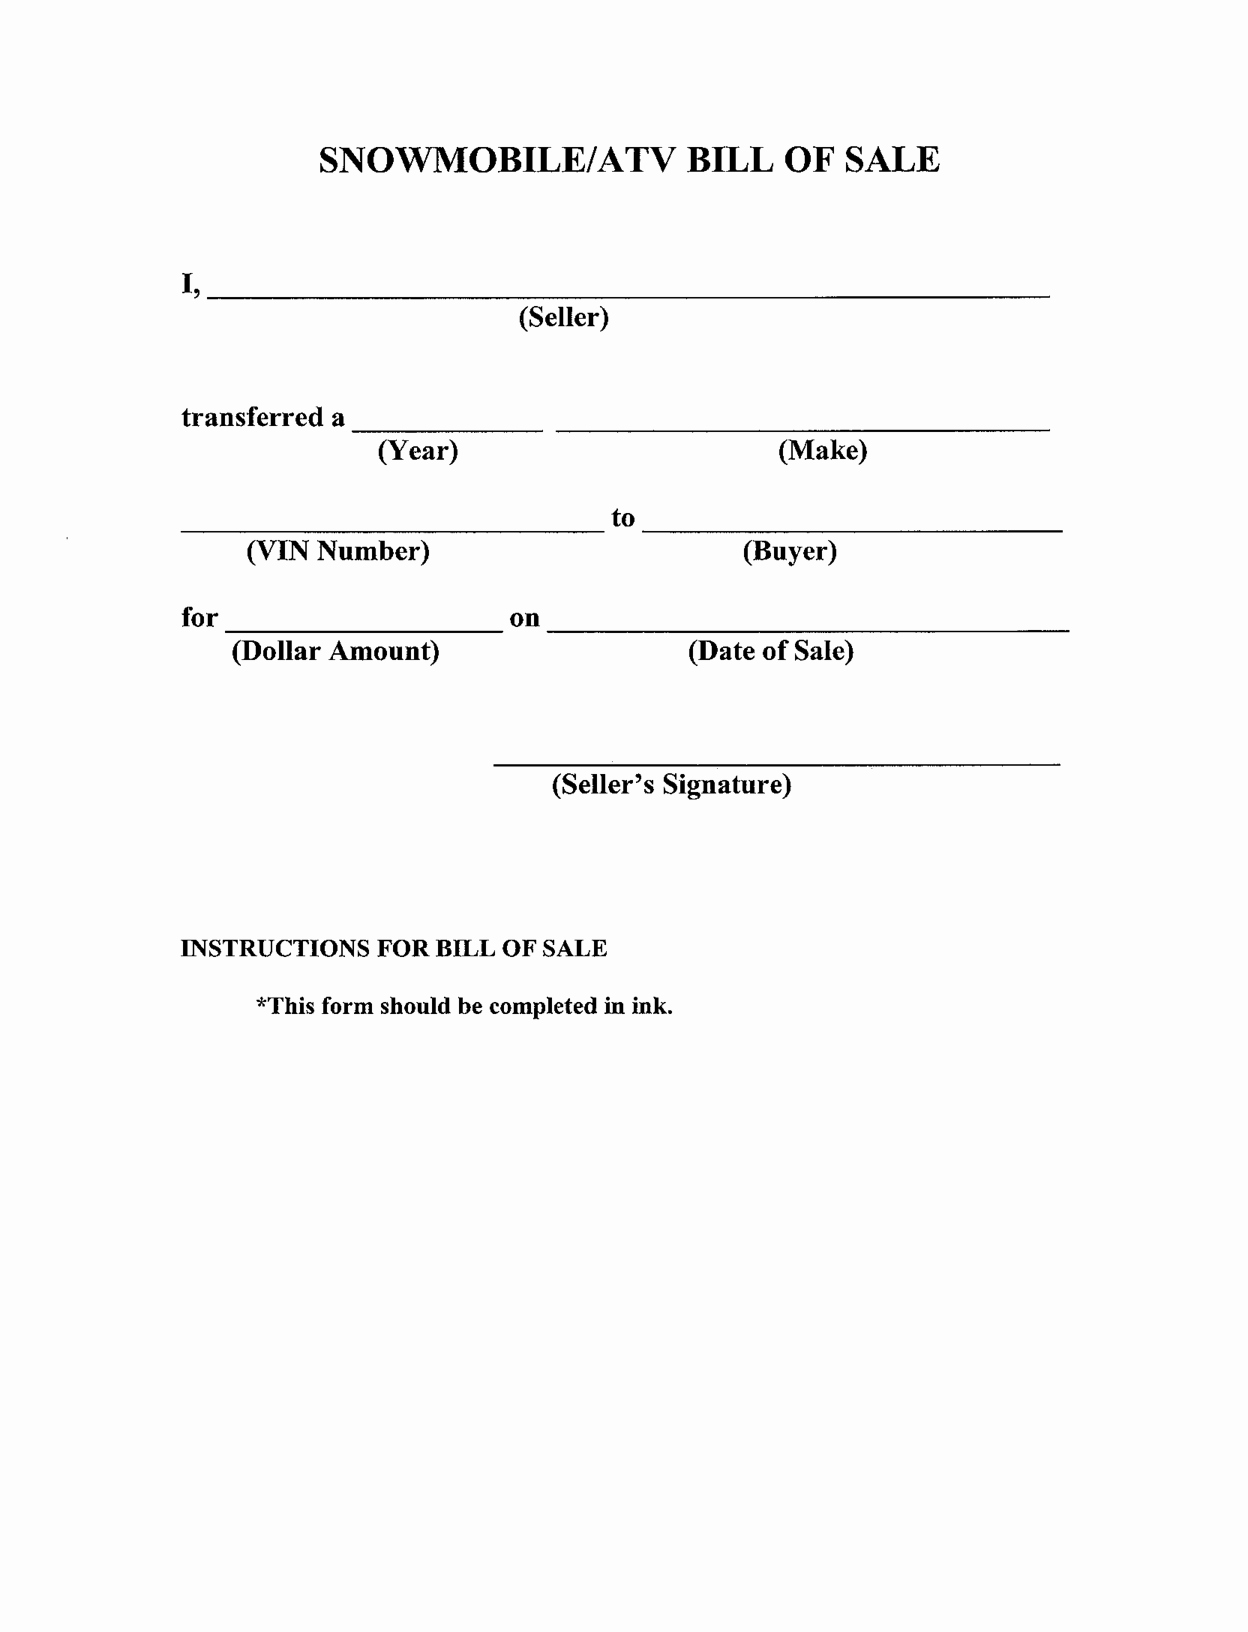 Bill Of Sale Sample Pdf Unique Free Printable Bill Of Sale Templates form Generic